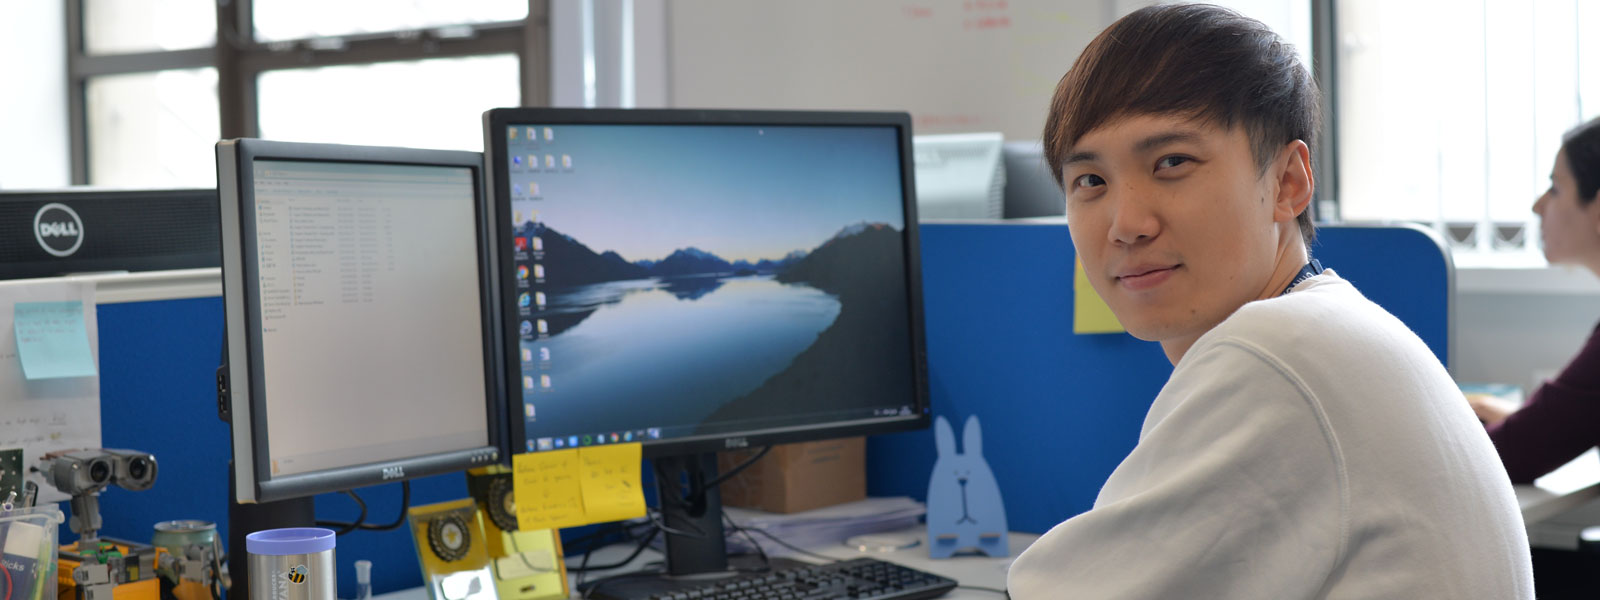 Chemical & Process Engineering PhD student Wenhan, from China, sitting at his desk, smiling at the camera